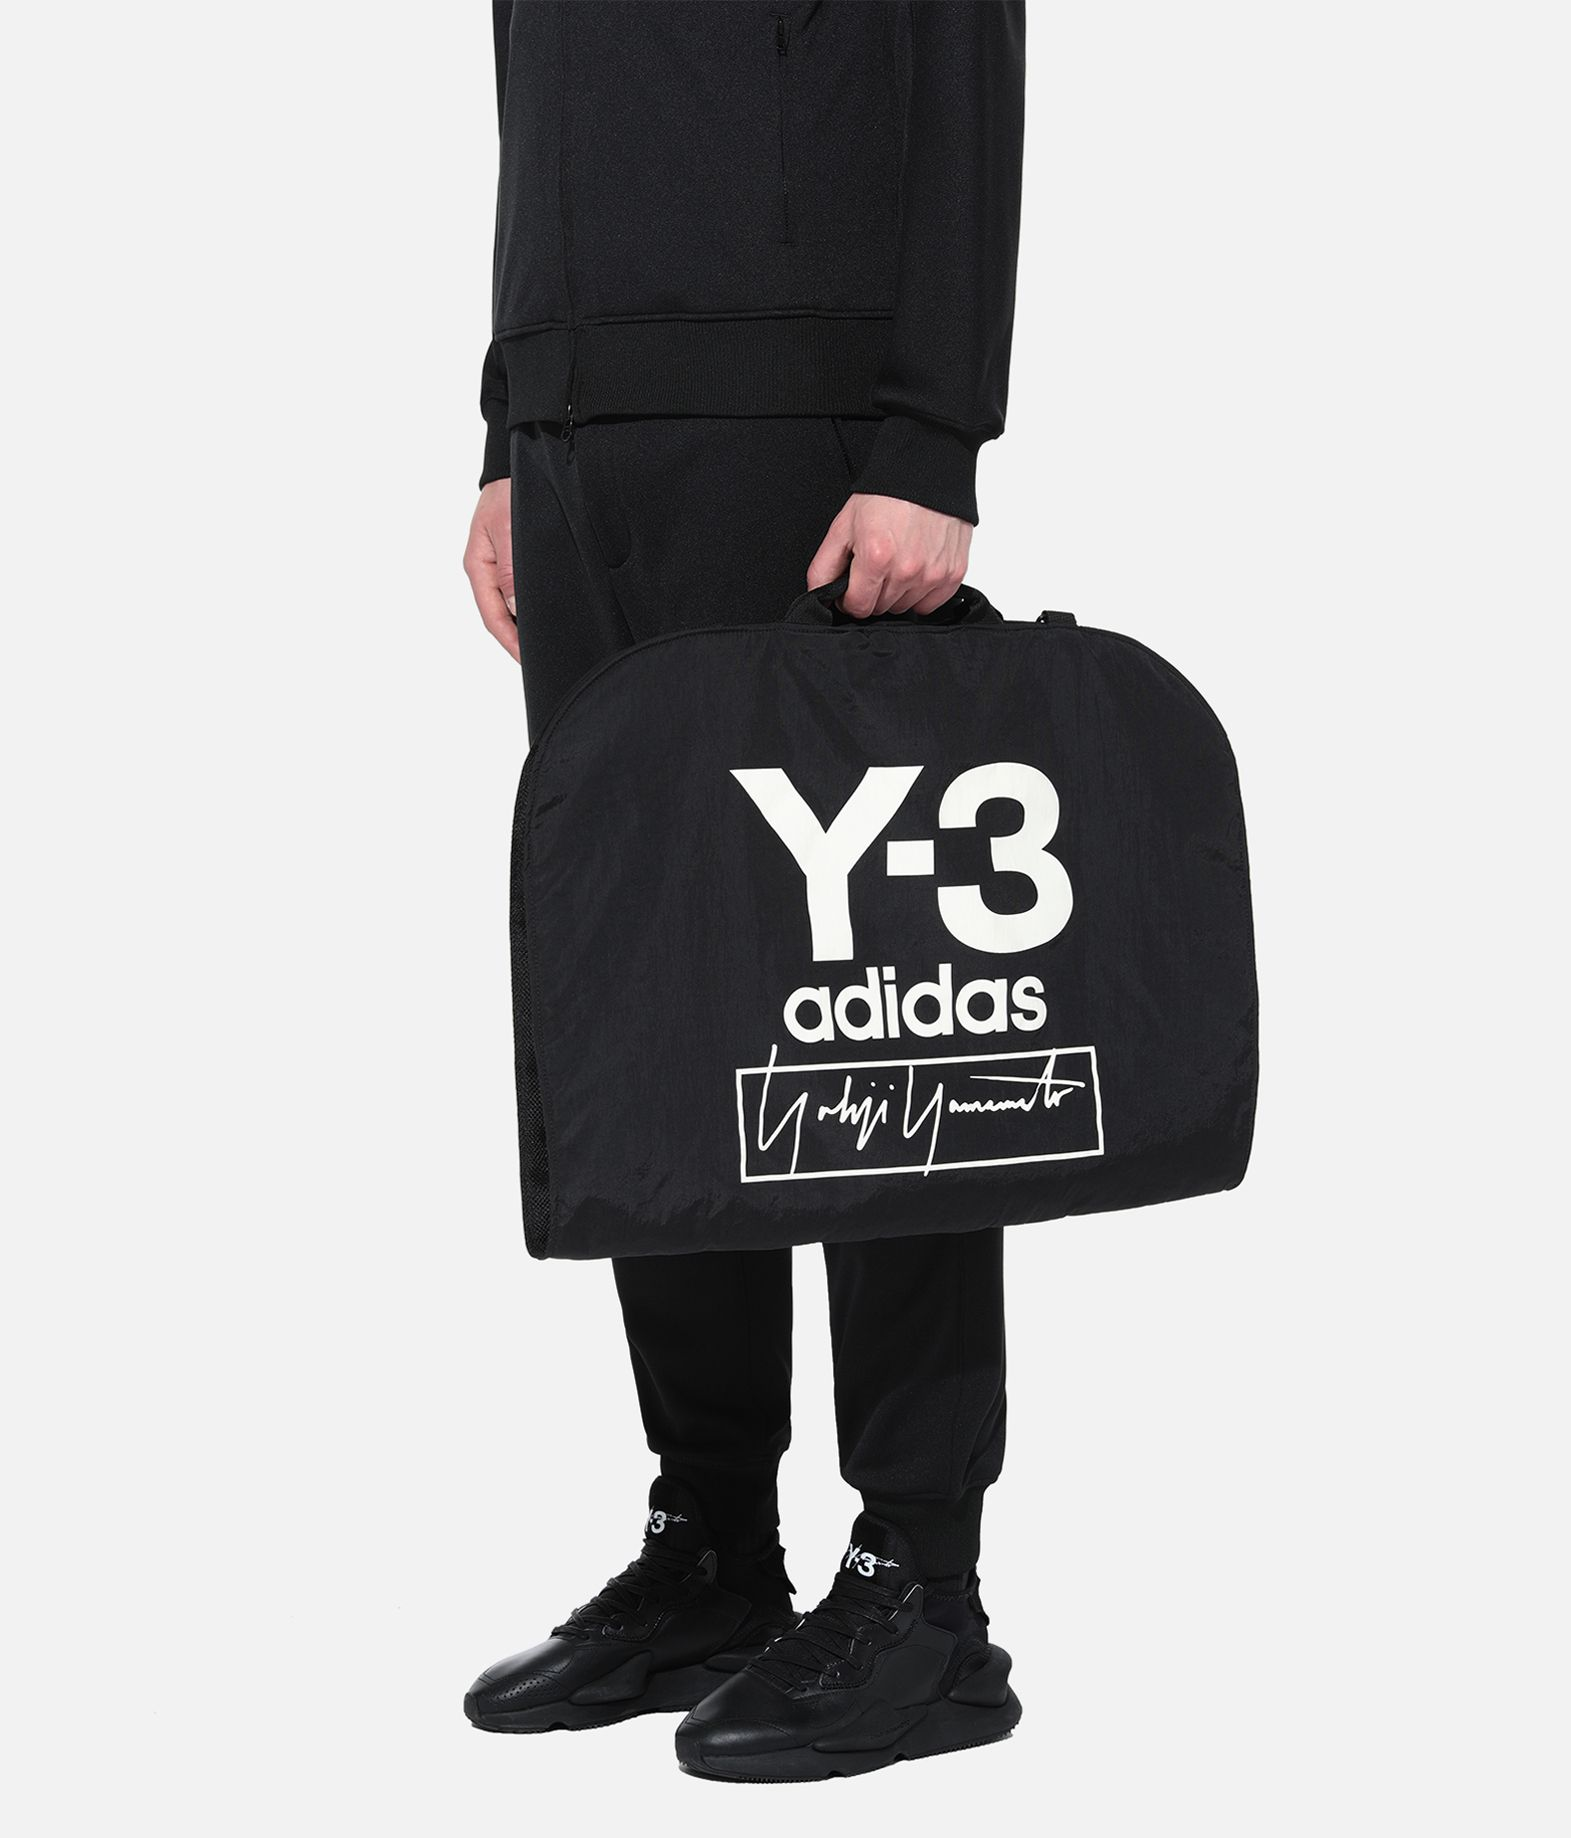 Y-3 Y-3 Suit Bag Travel bags E r